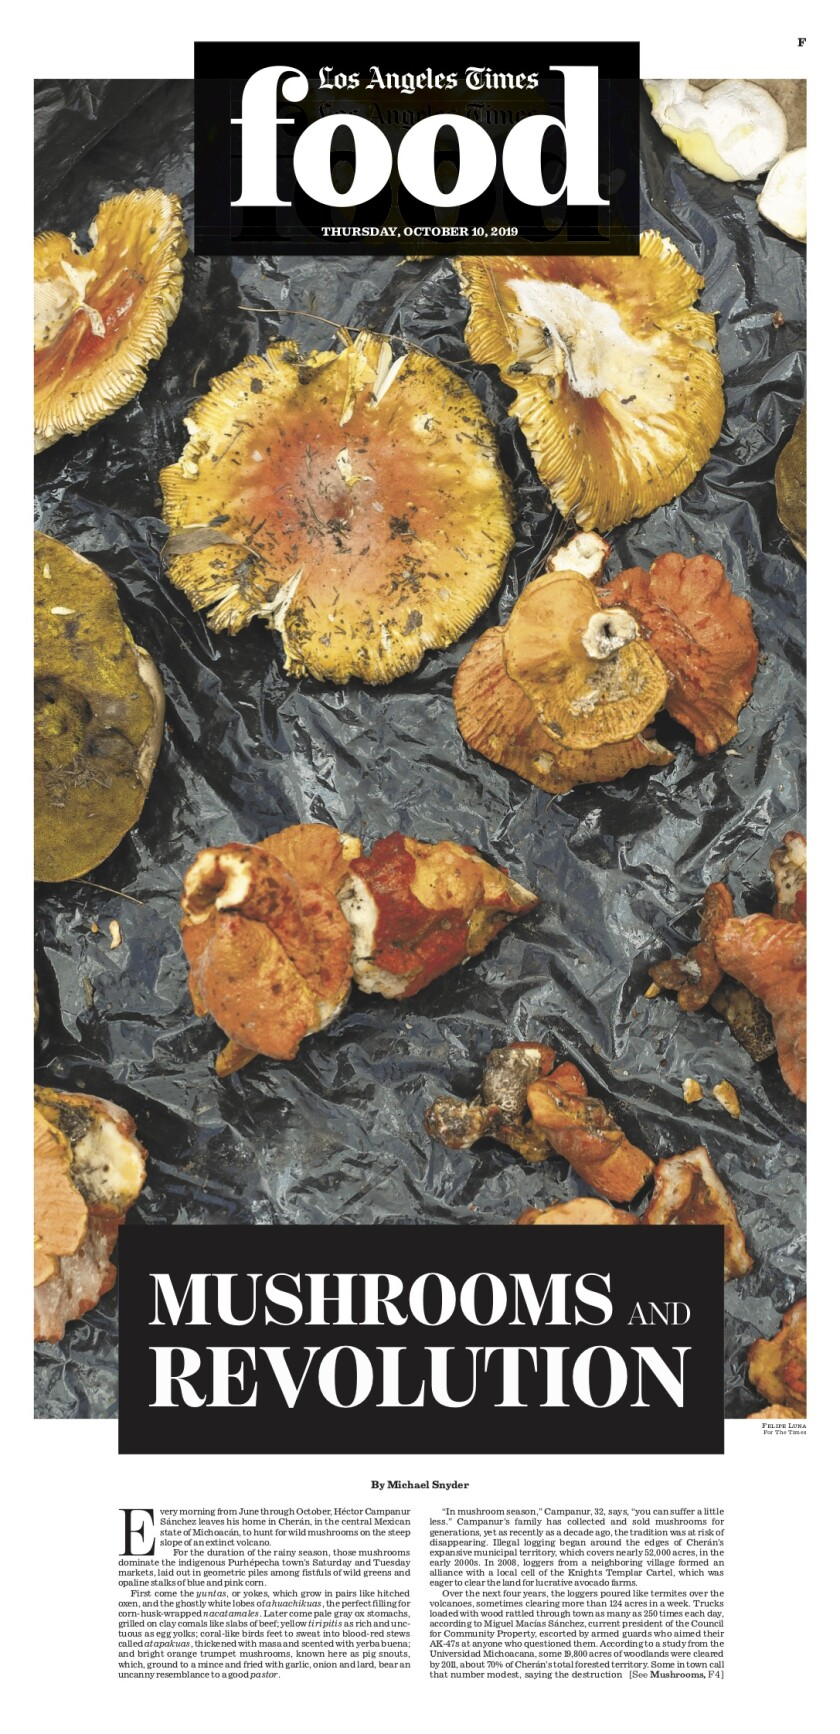 Los Angeles Times Food cover, October 10, 2019